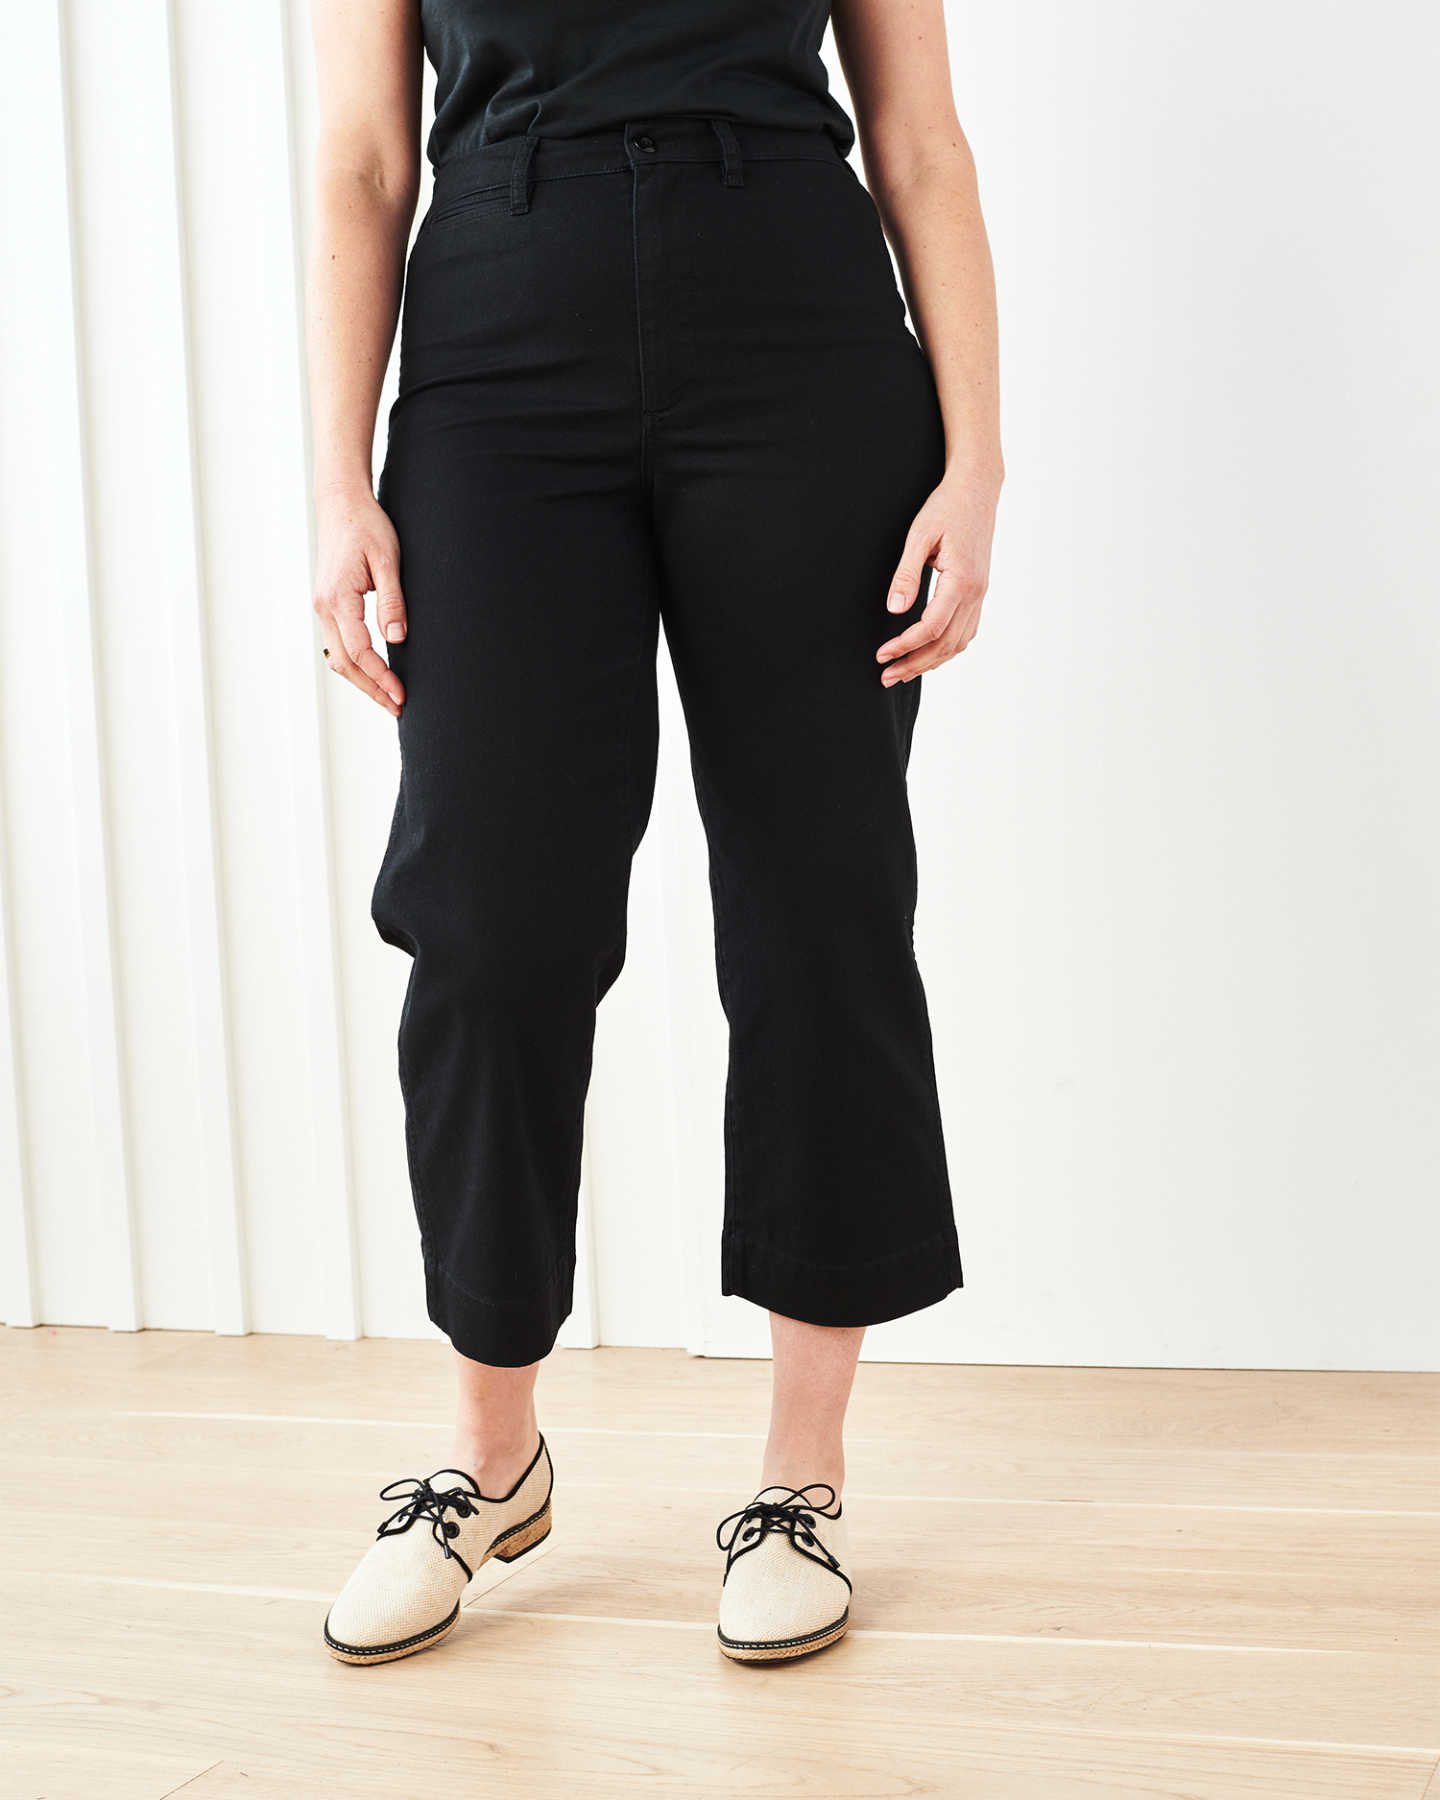 Stretch Cotton Twill Wide-Leg Crop Pant - Black - 7 - Thumbnail